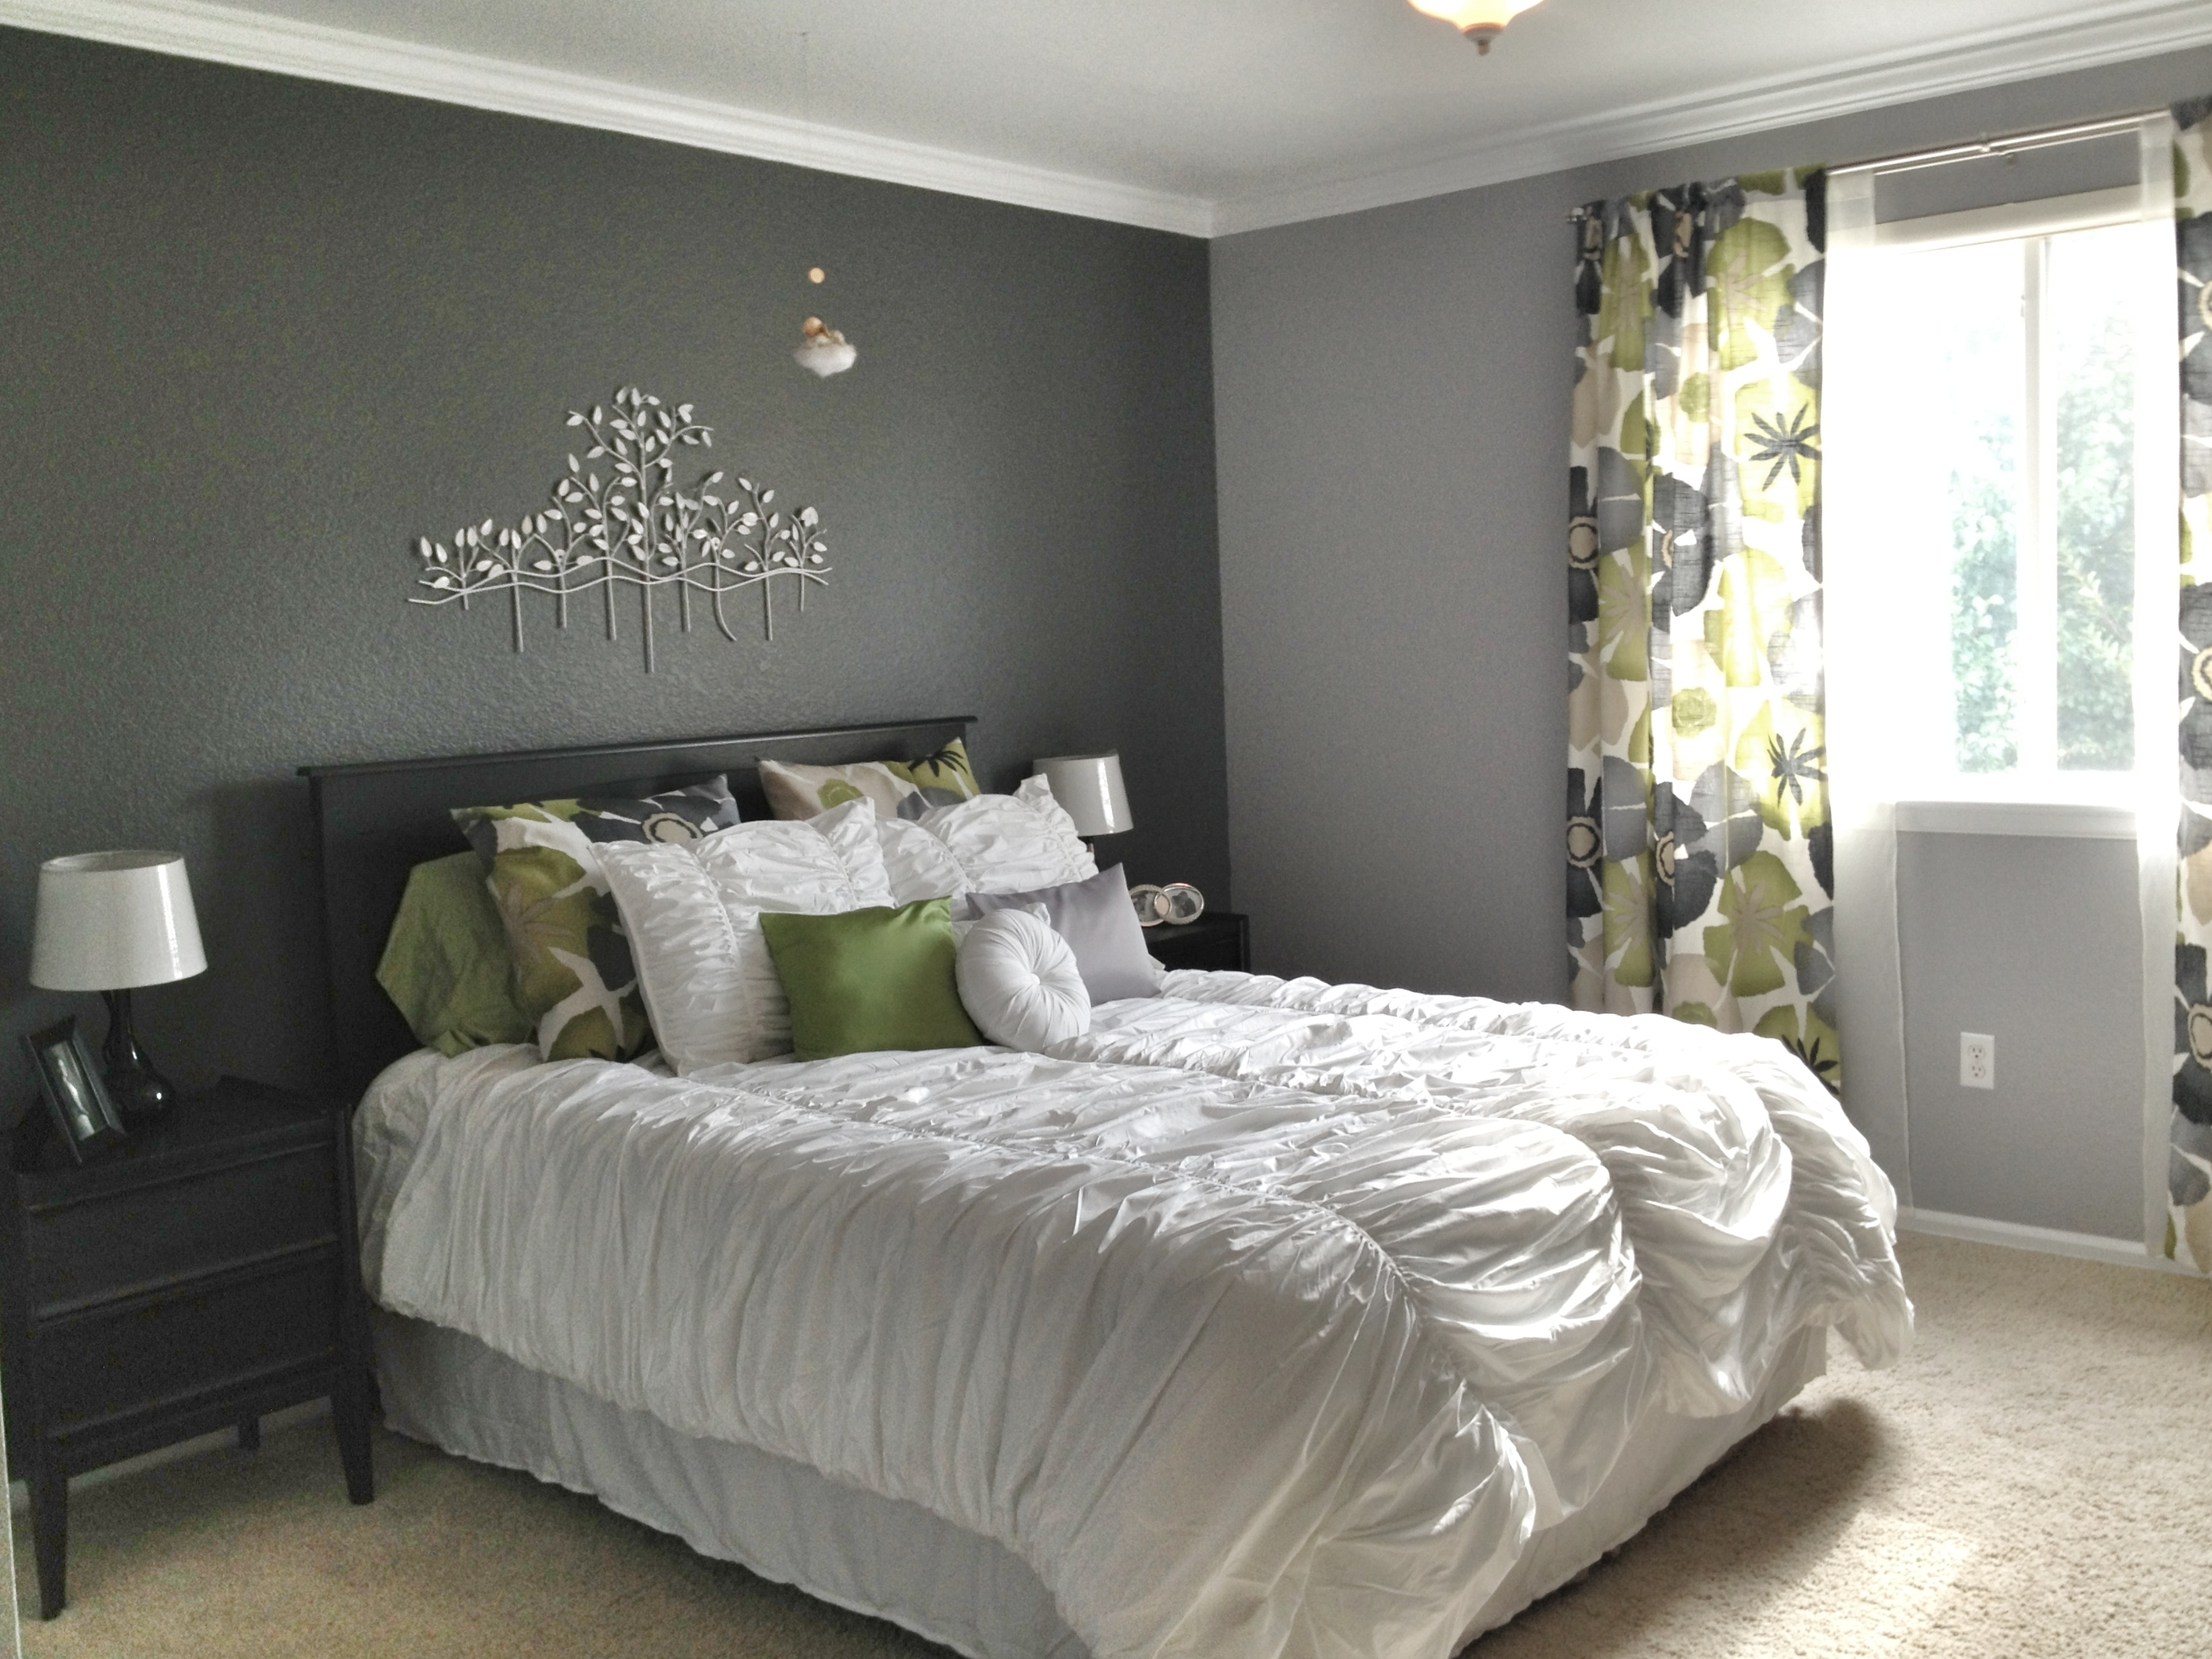 Bedroom Design: Pictures Of Accent Walls Bedroom Wall Decor Ideas In Most Recently Released Wallpaper Bedroom Wall Accents (View 13 of 15)